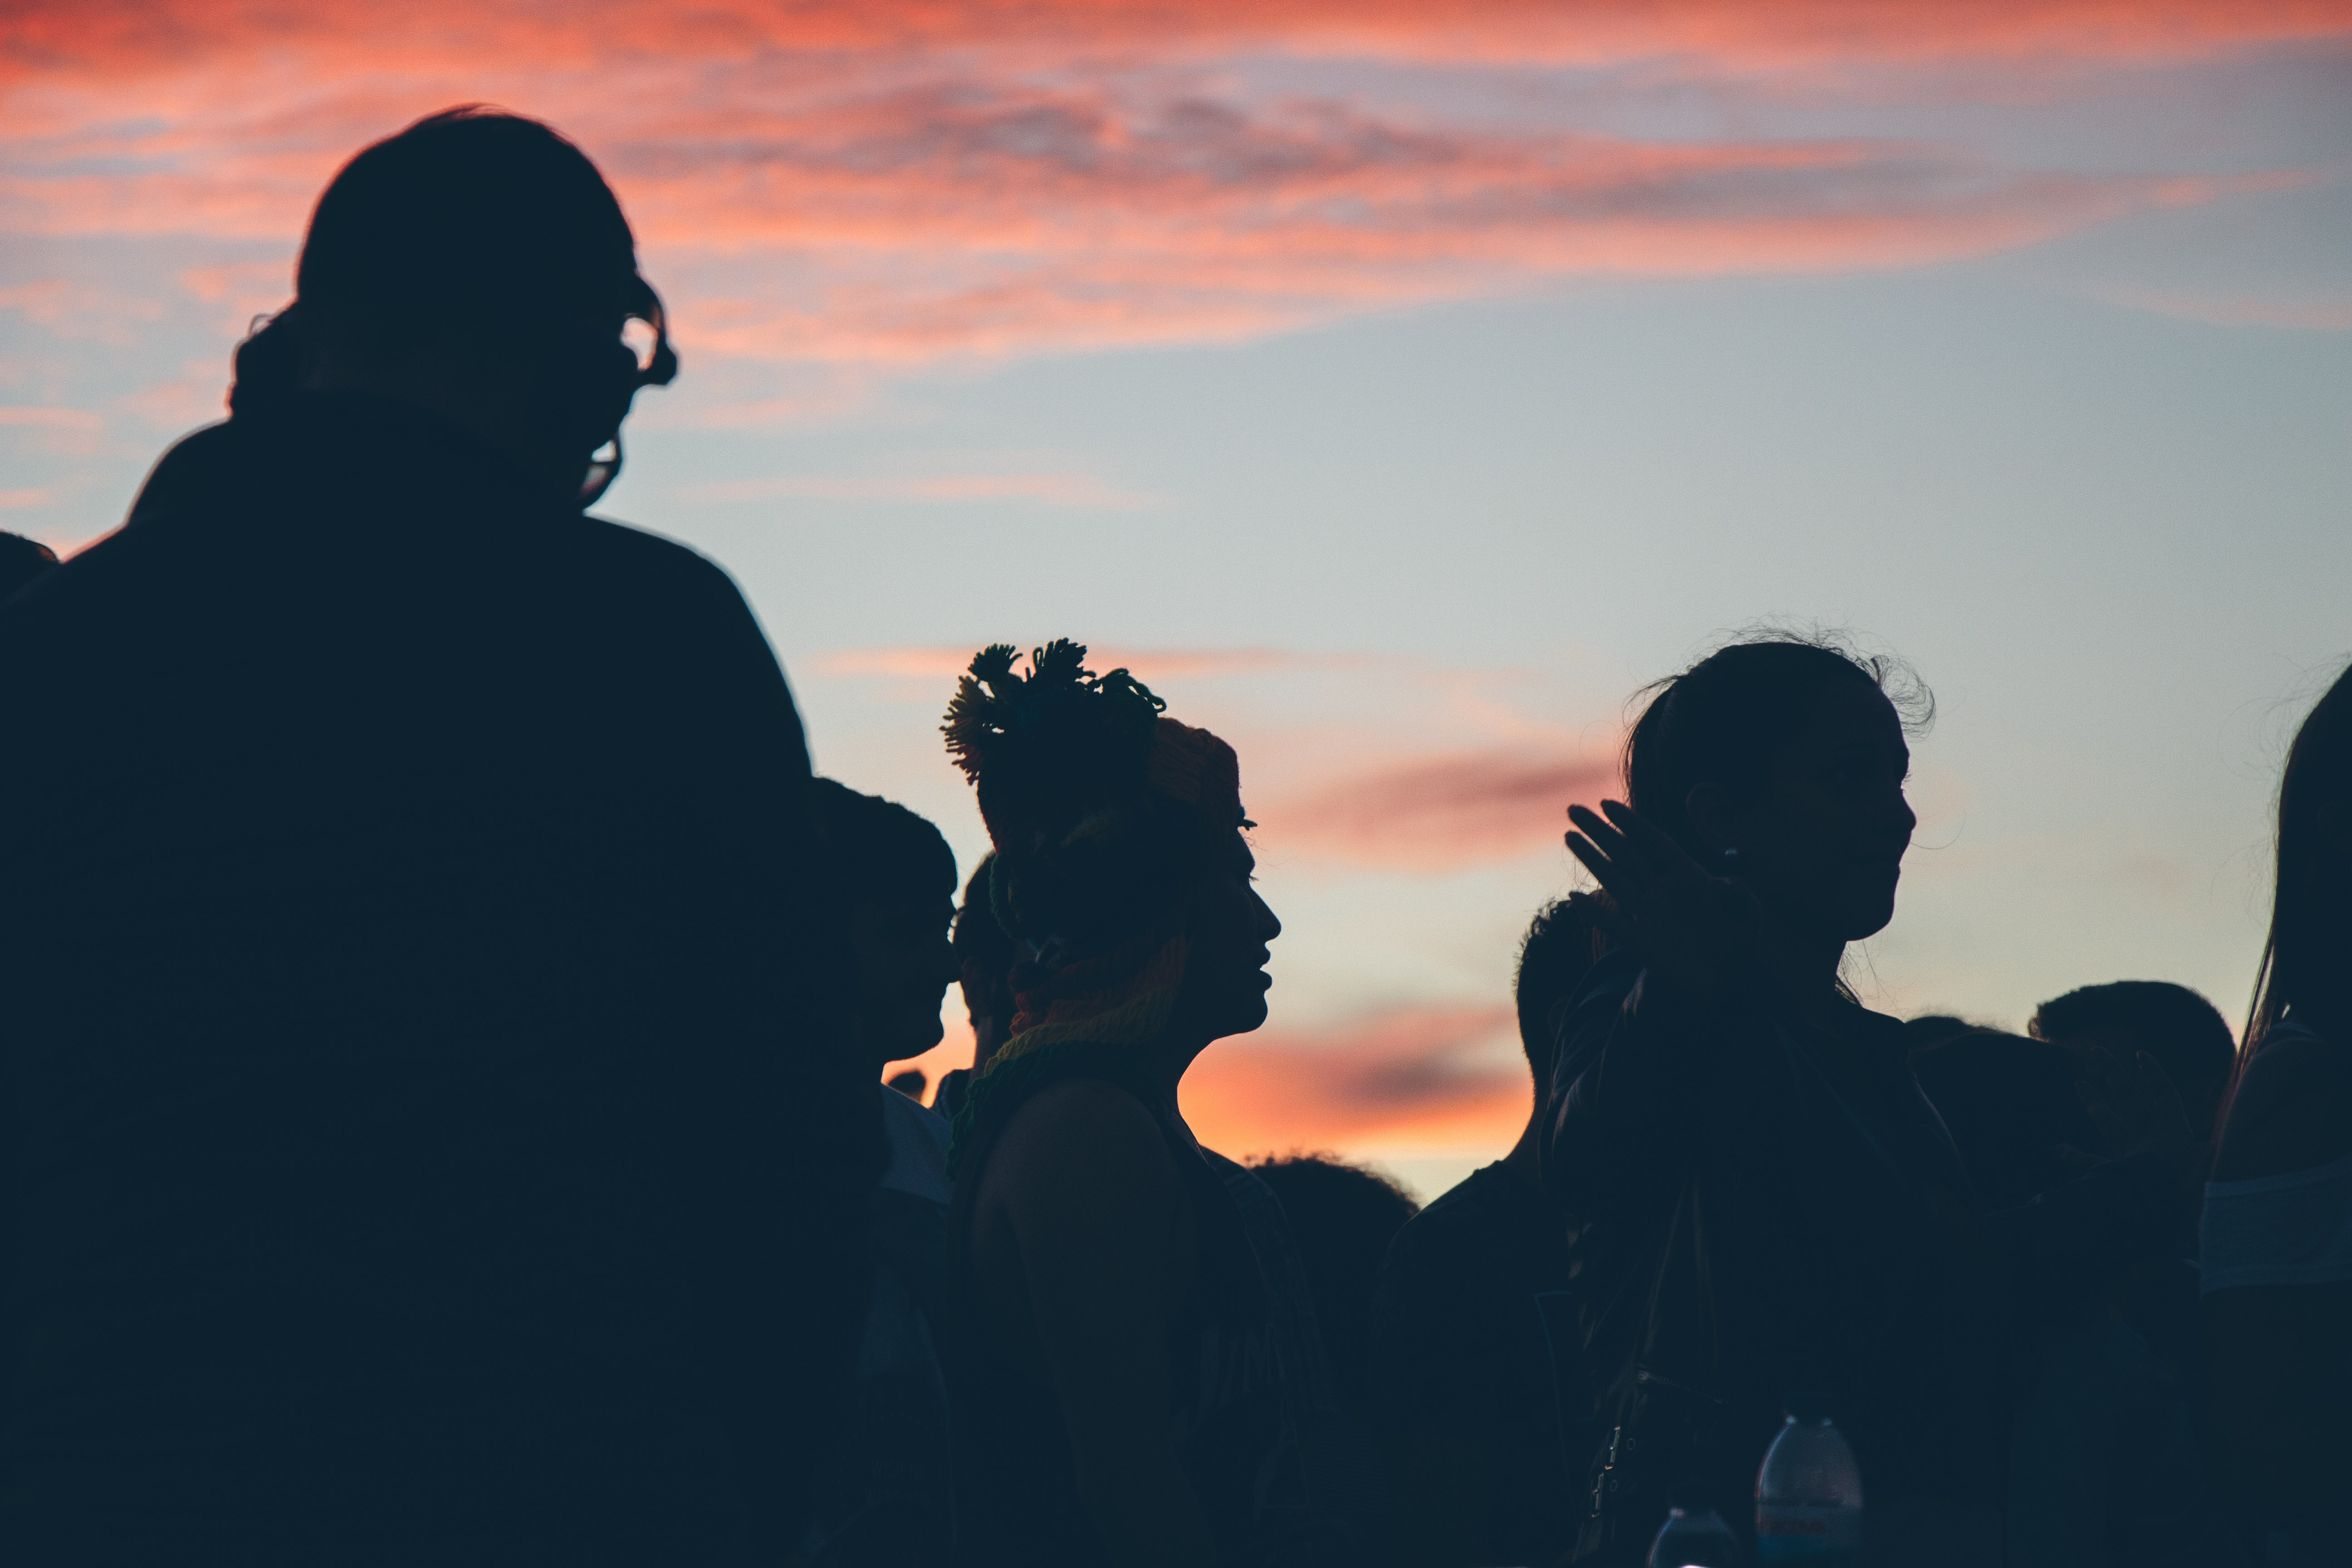 Silhouette of a group of people watching something and standing under the sunset in Leiria